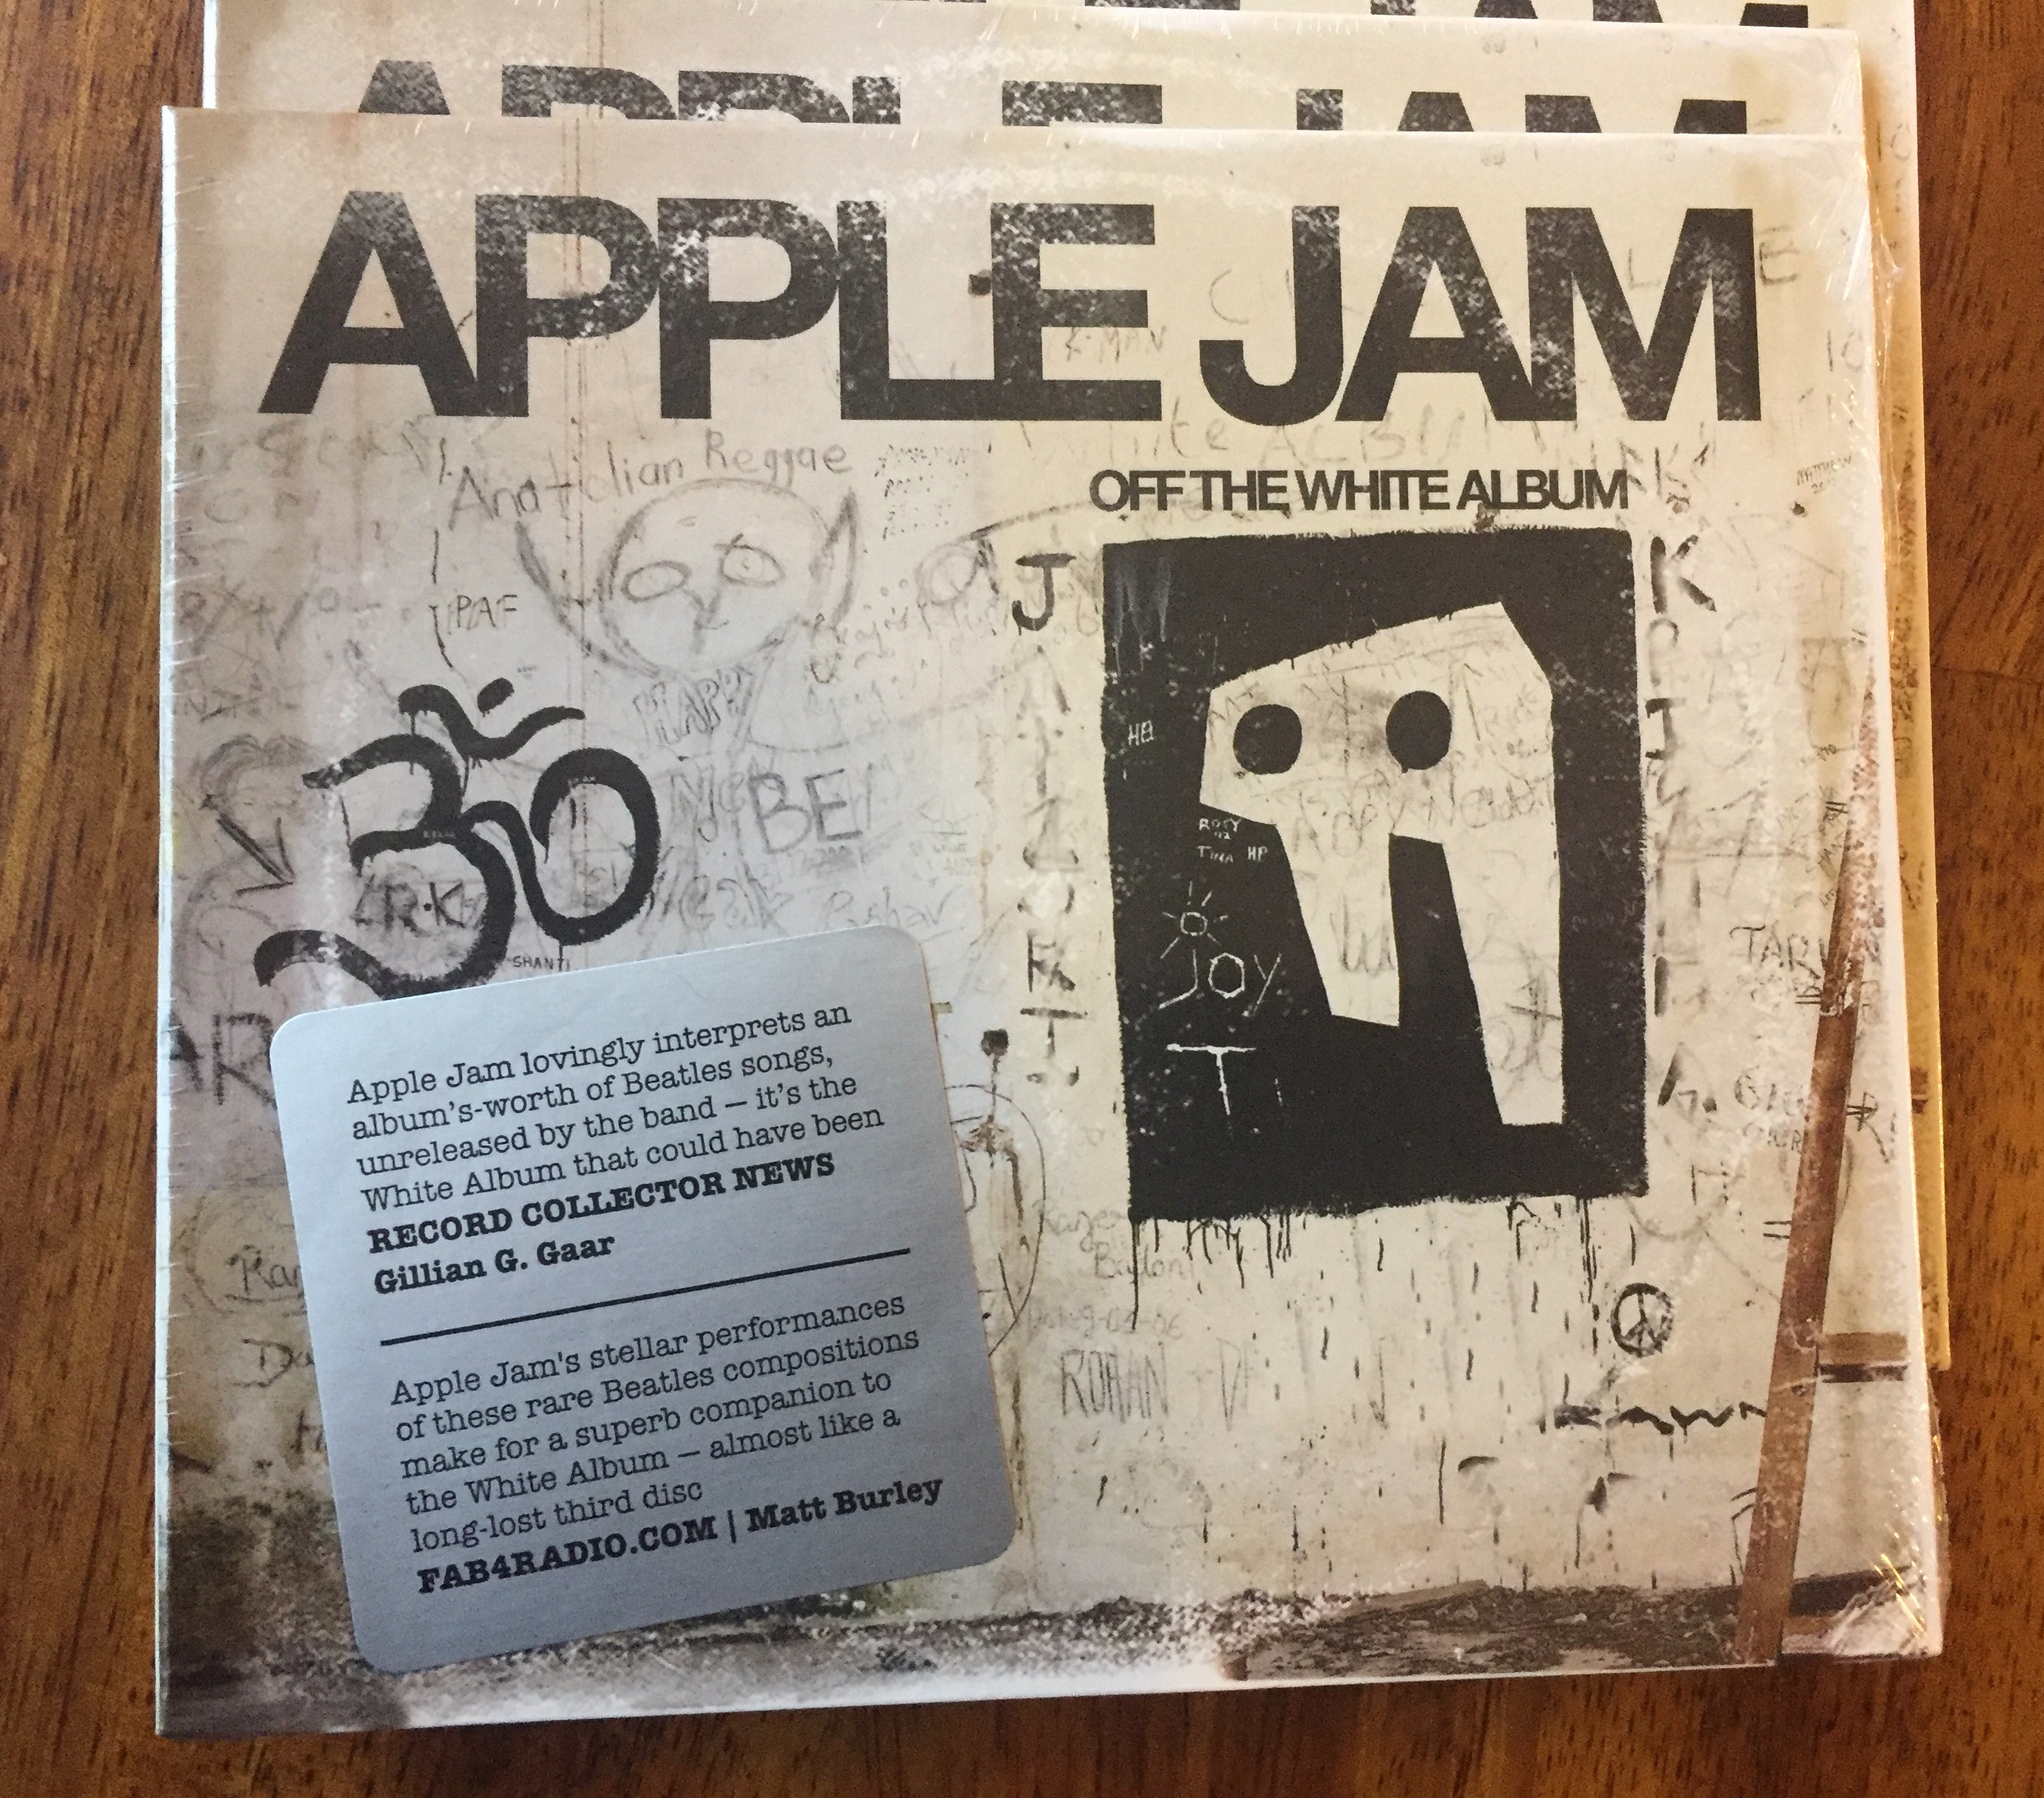 apple jams latest cd off the white album will be available to purchase at the show weve got a copy to giveaway along with a pair of tickets